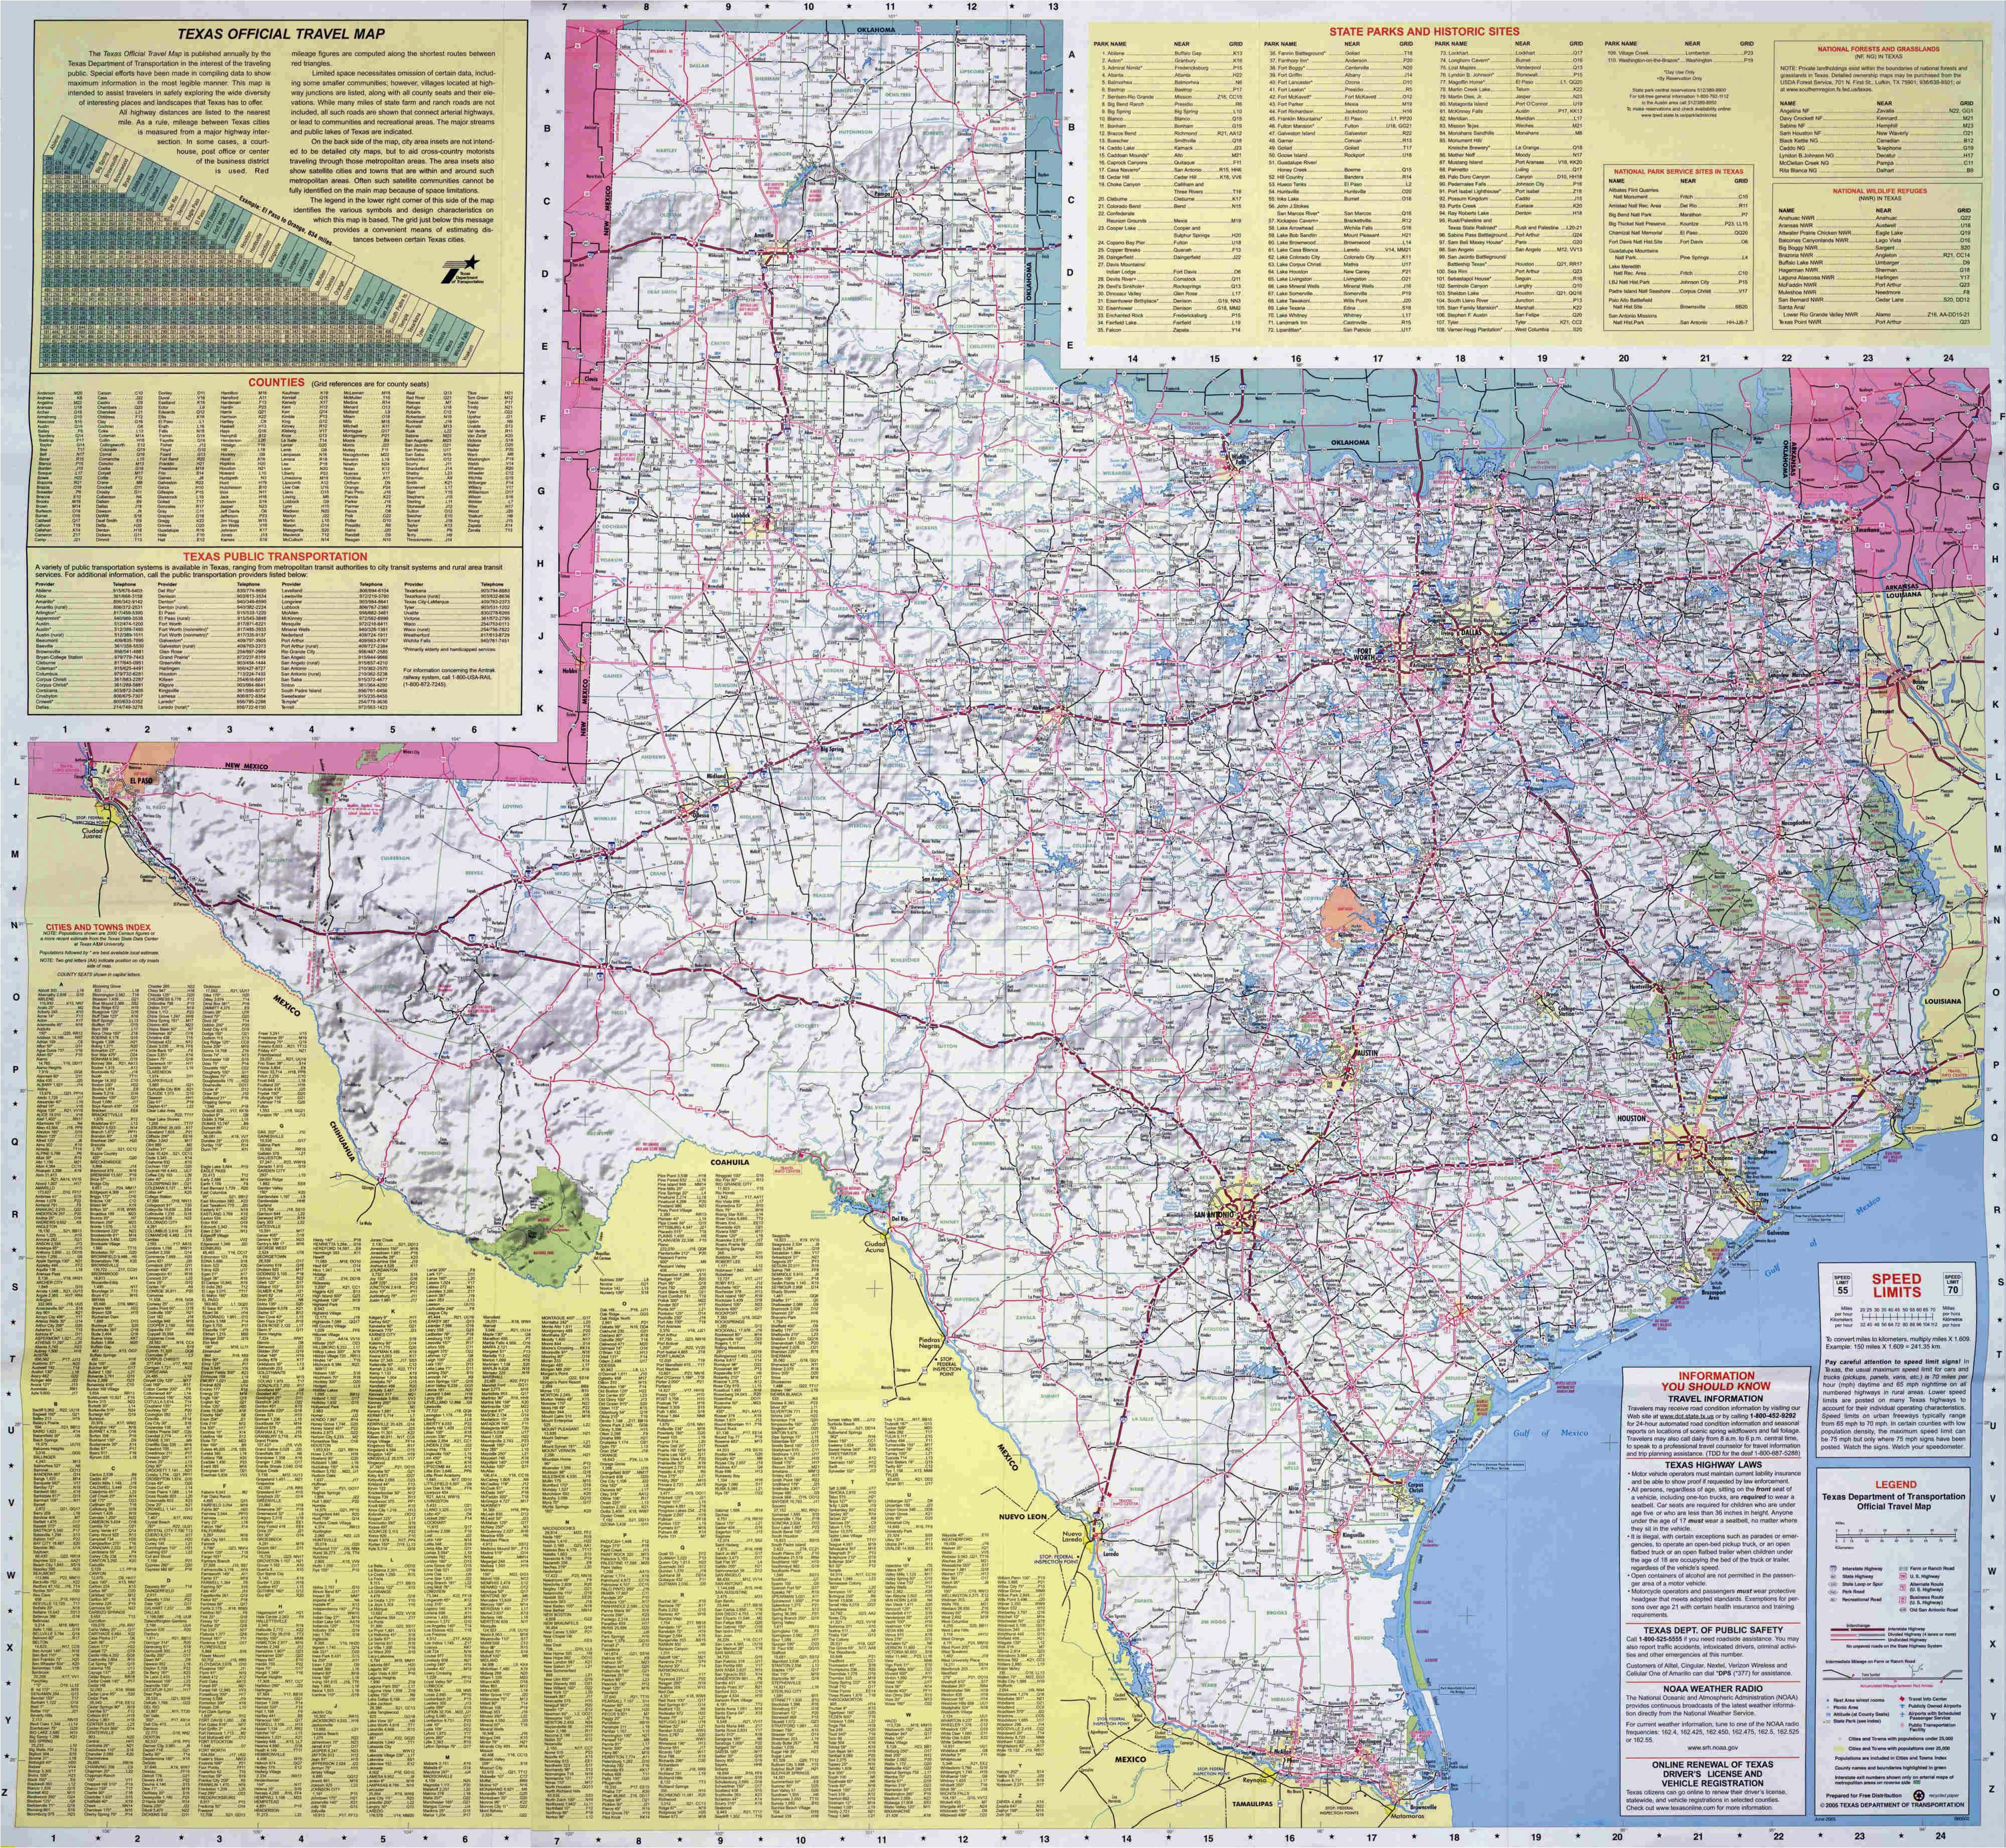 State Of Texas Highway Map Large Road Map Of the State Of Texas Texas State Large Road Map